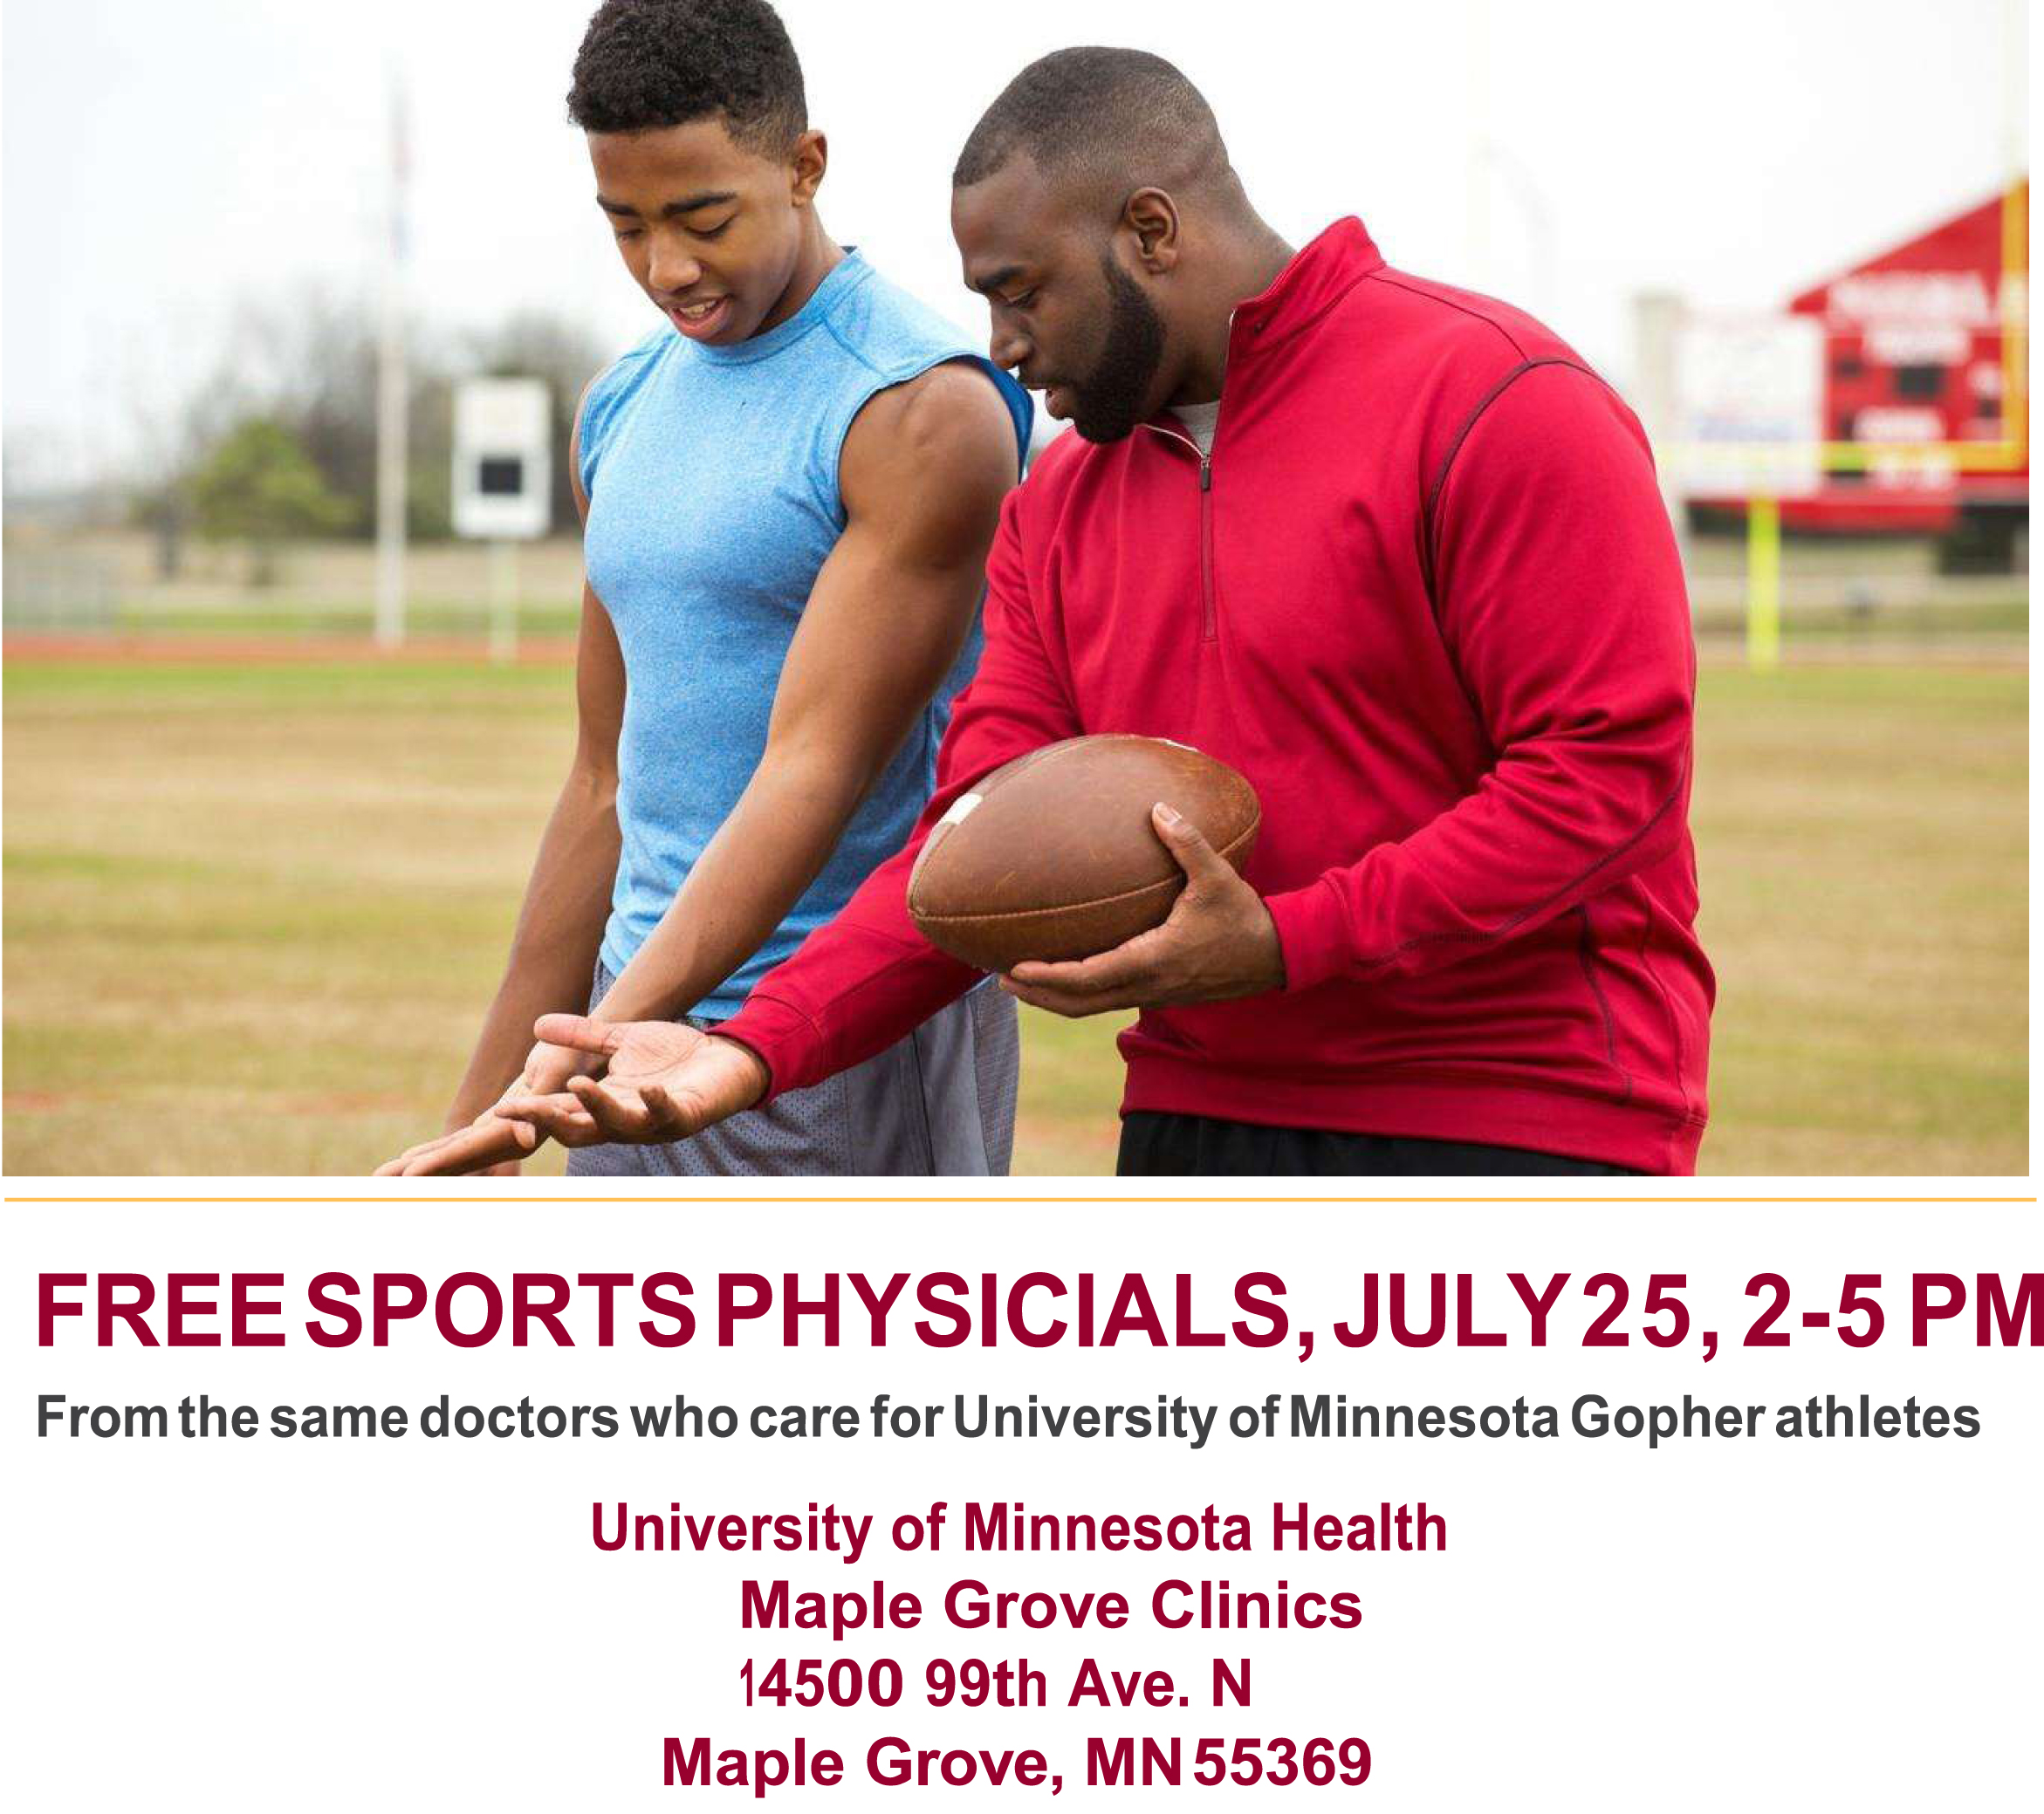 Free Sports Physicals on July 25th!